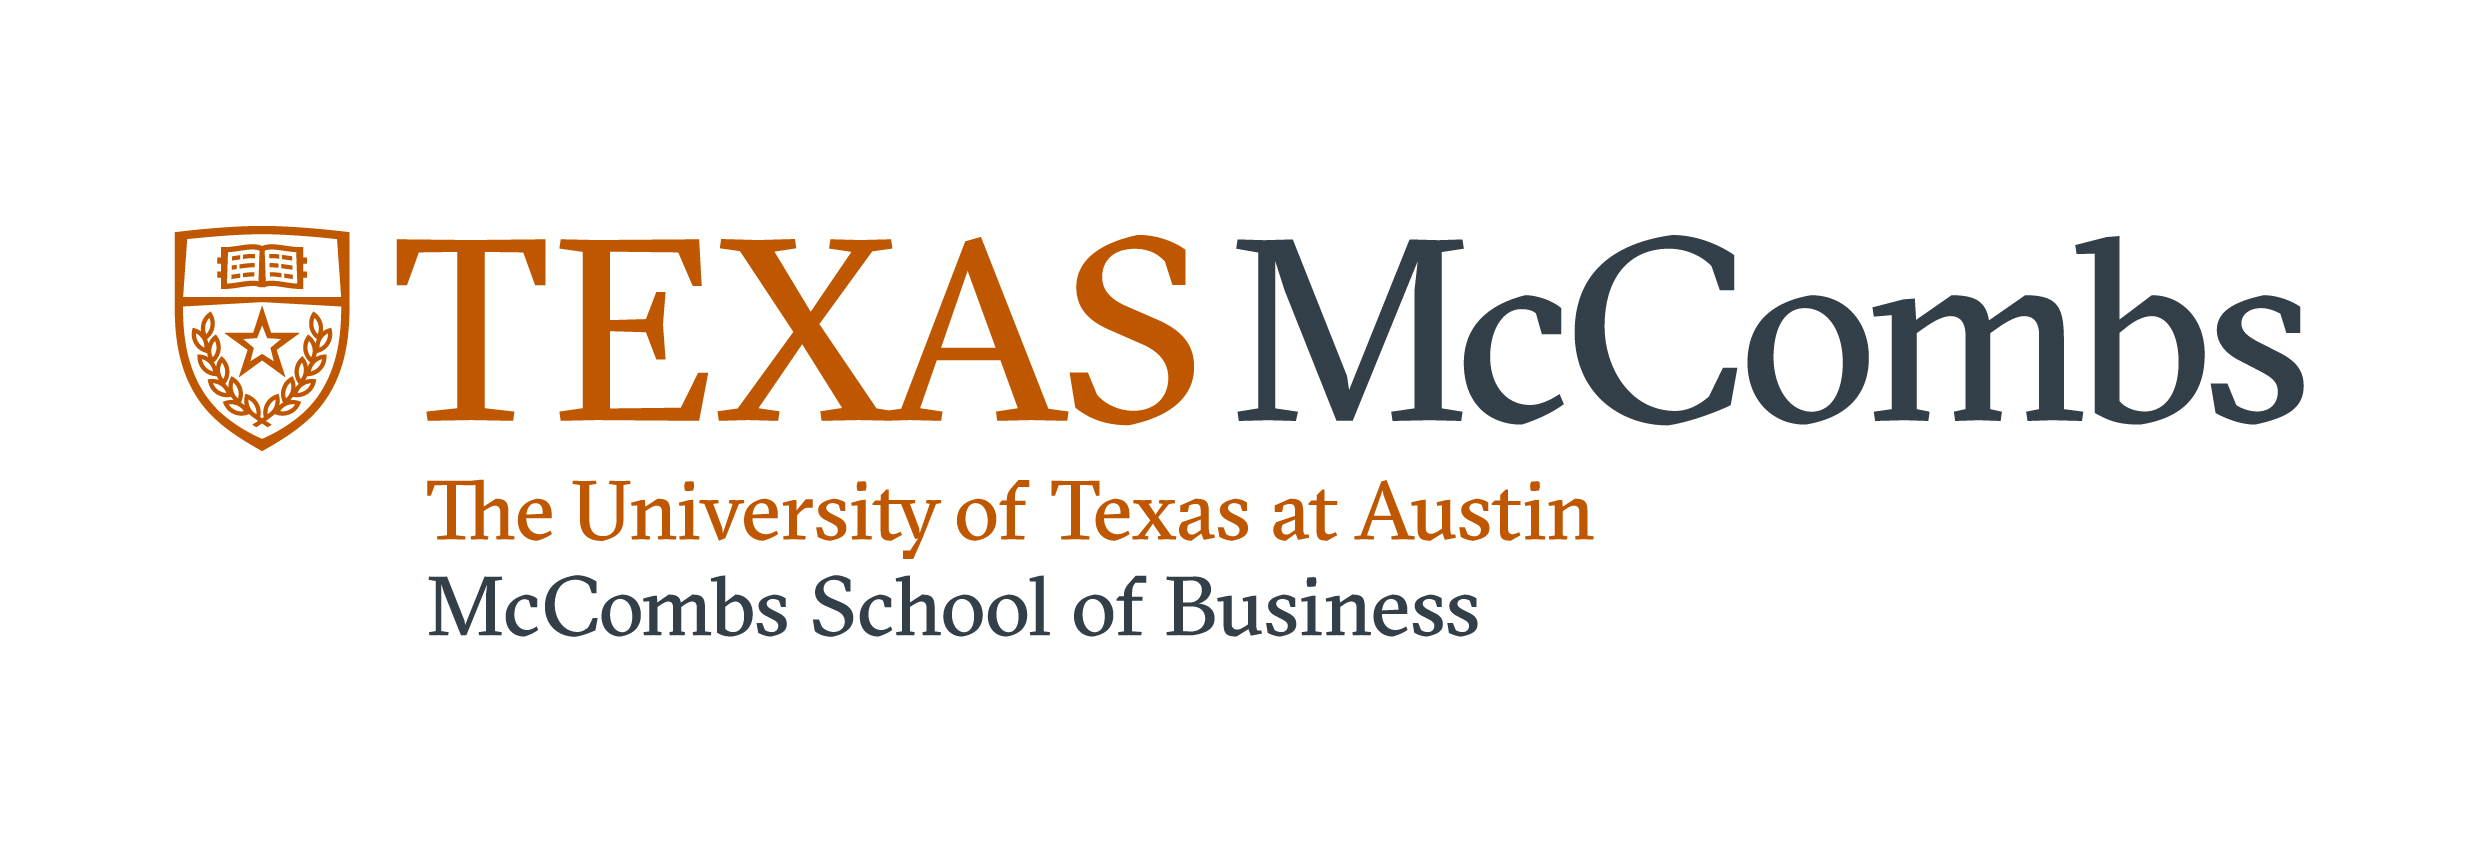 McCombs Business School, University of Texas at Austin